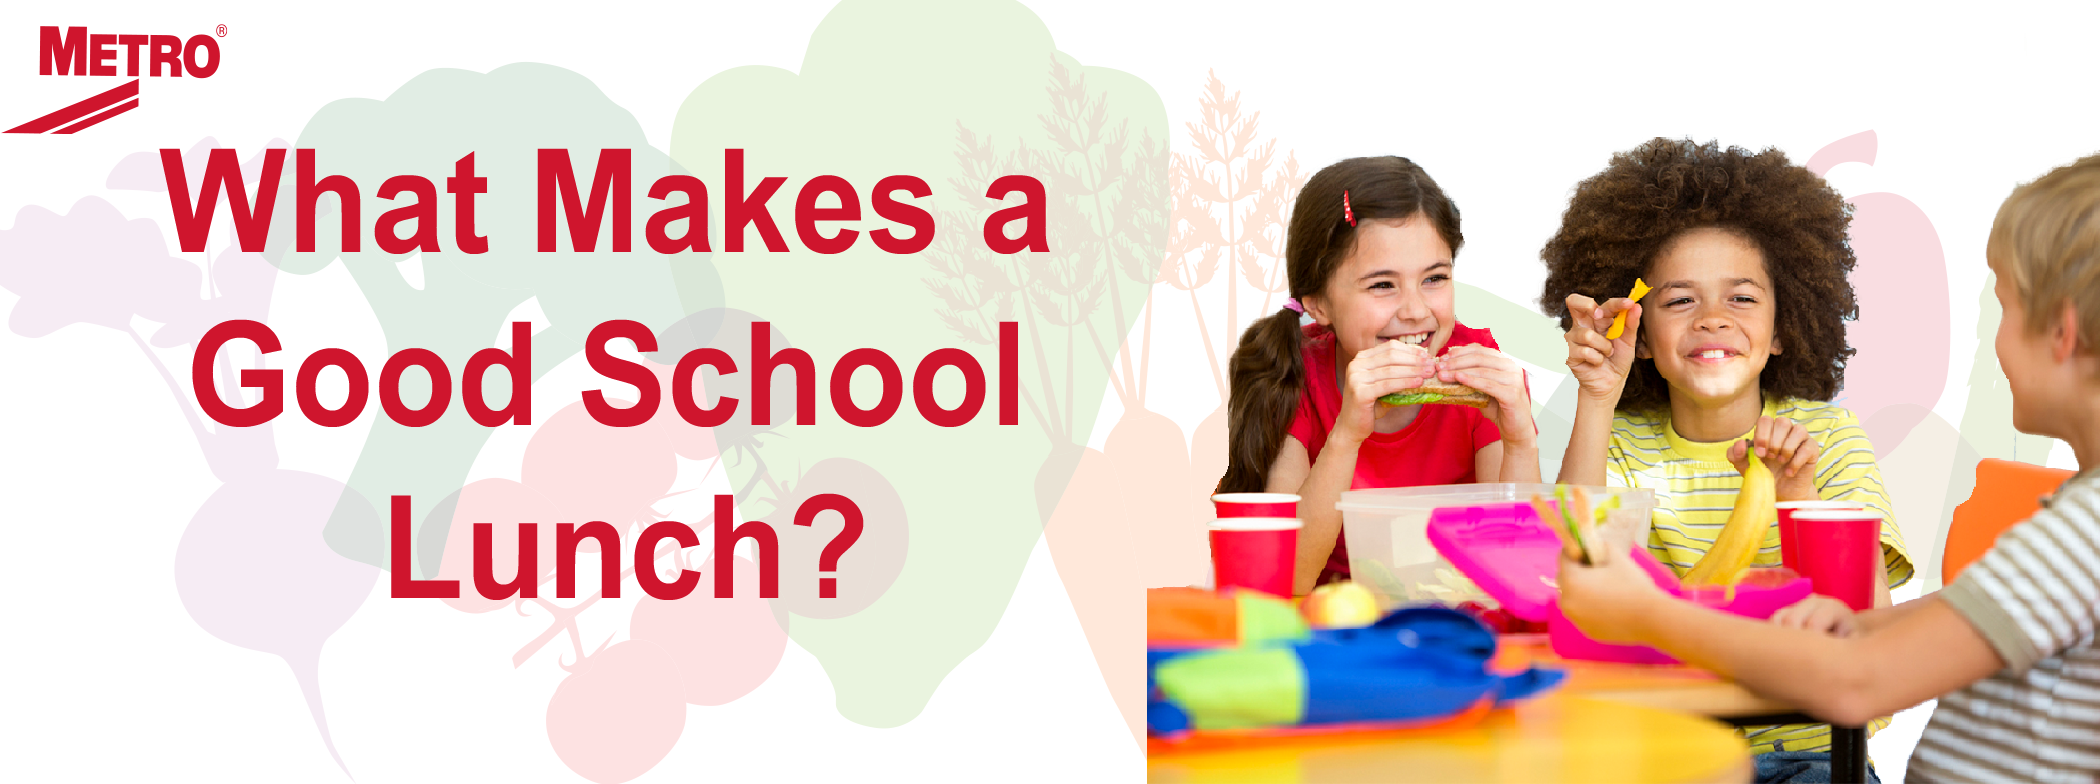 what makes a good school lunch